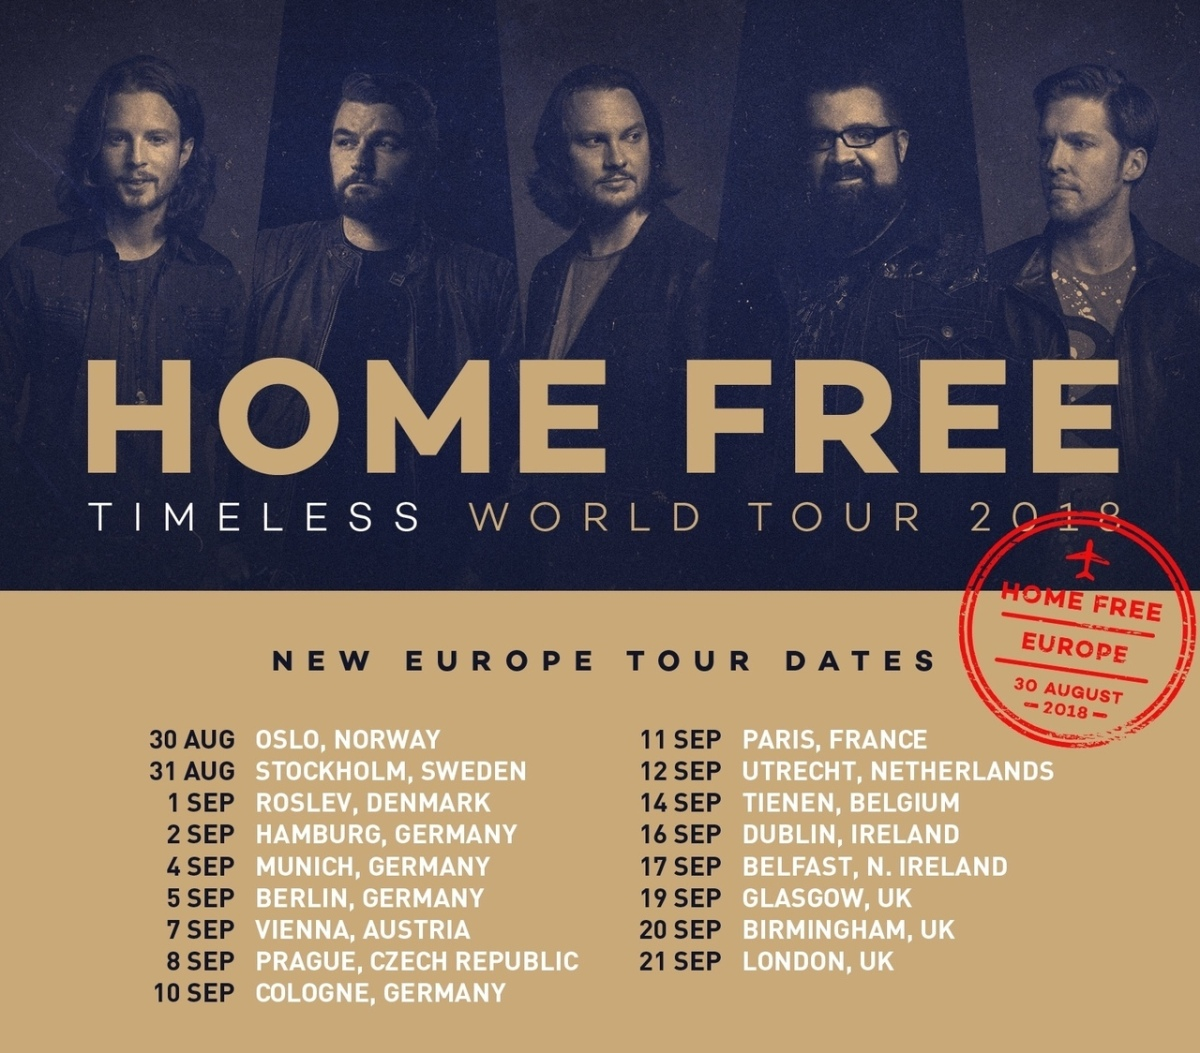 Home free tour dates in Perth